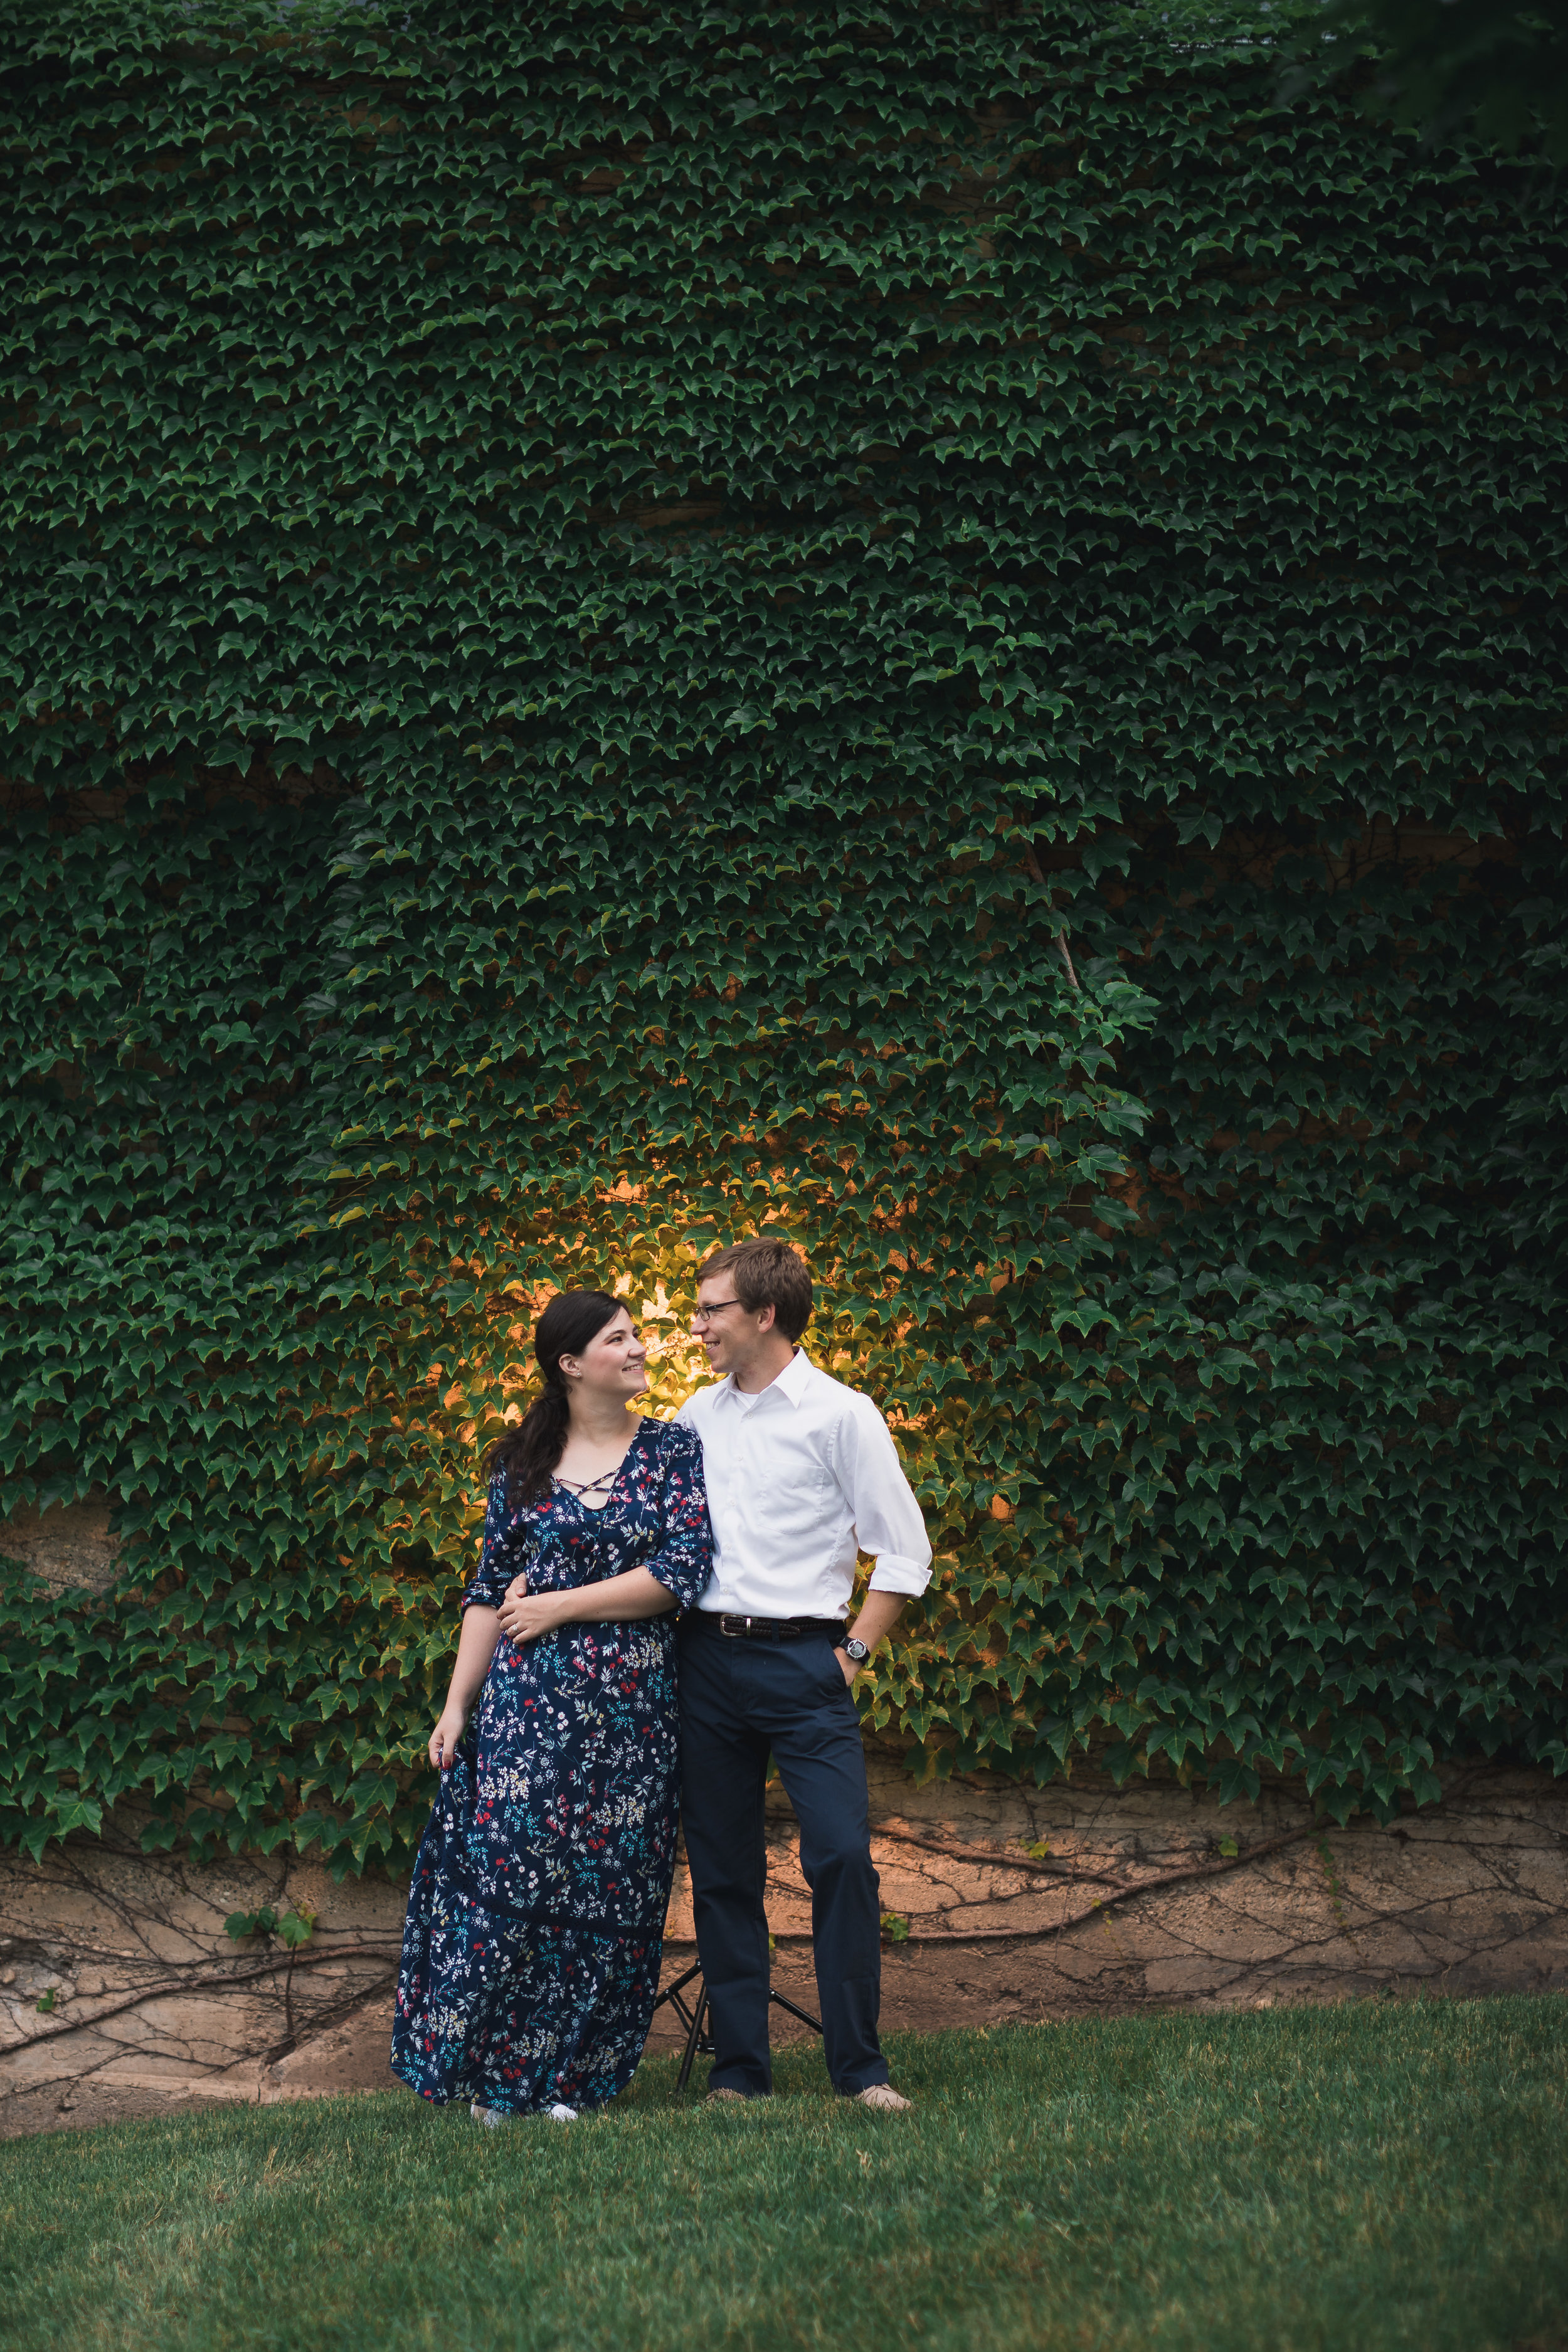 20180620_leslie_and_grant_engagement_44_5R3A0357.jpg